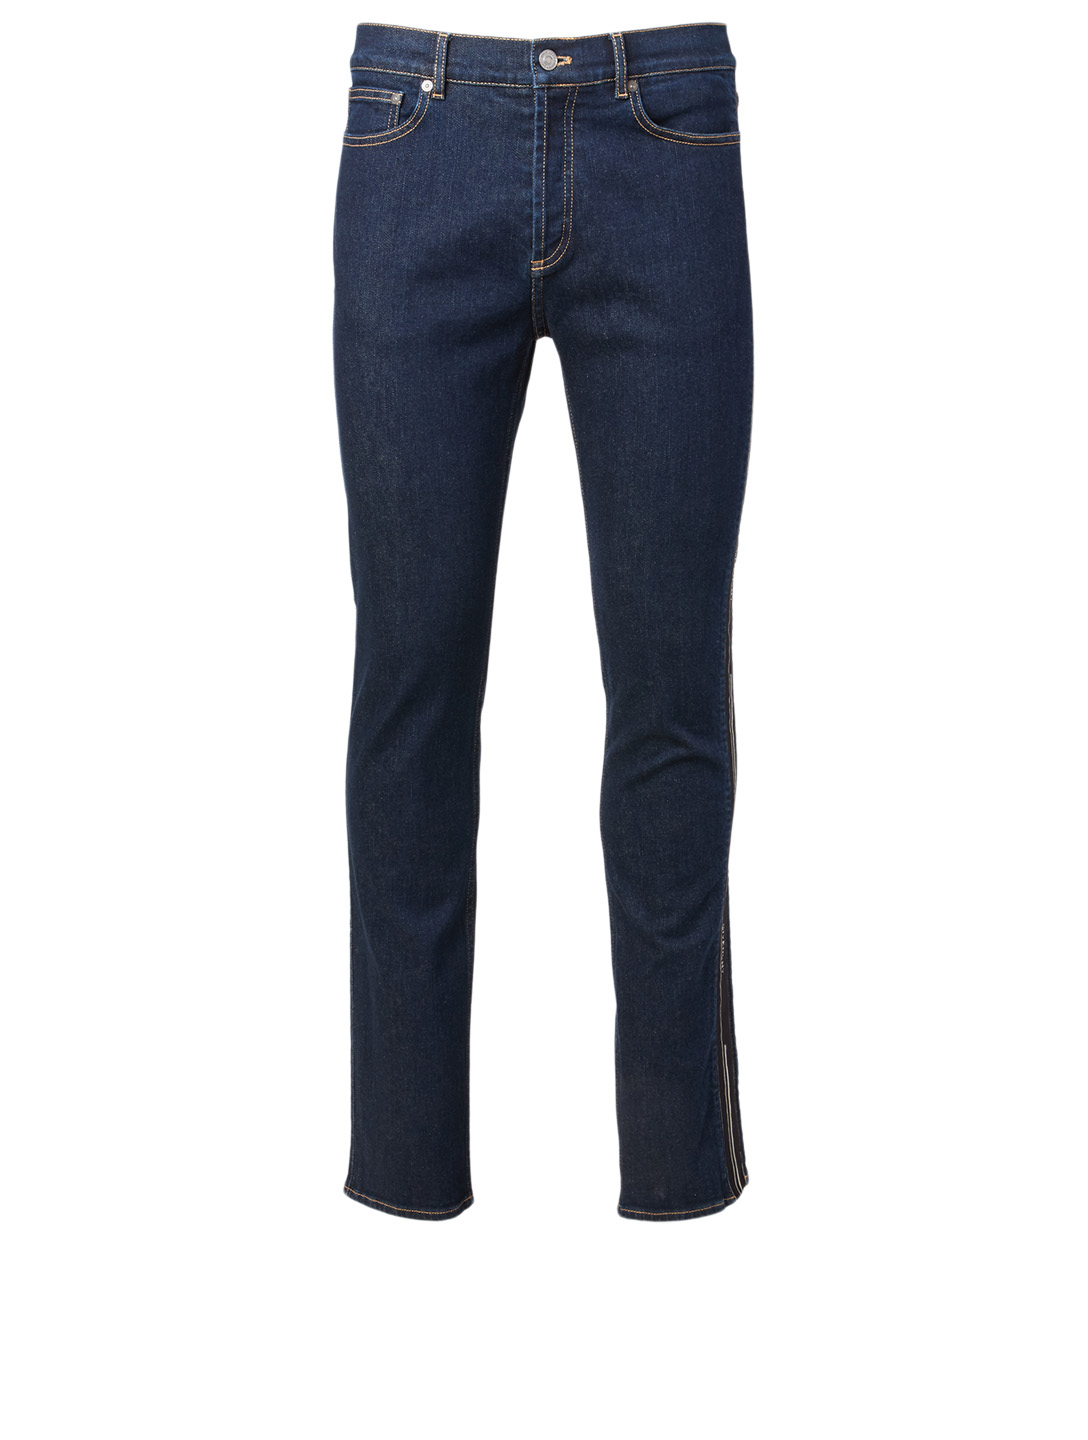 GIVENCHY Slim-Fit Jeans With Logo Tape Men's Blue